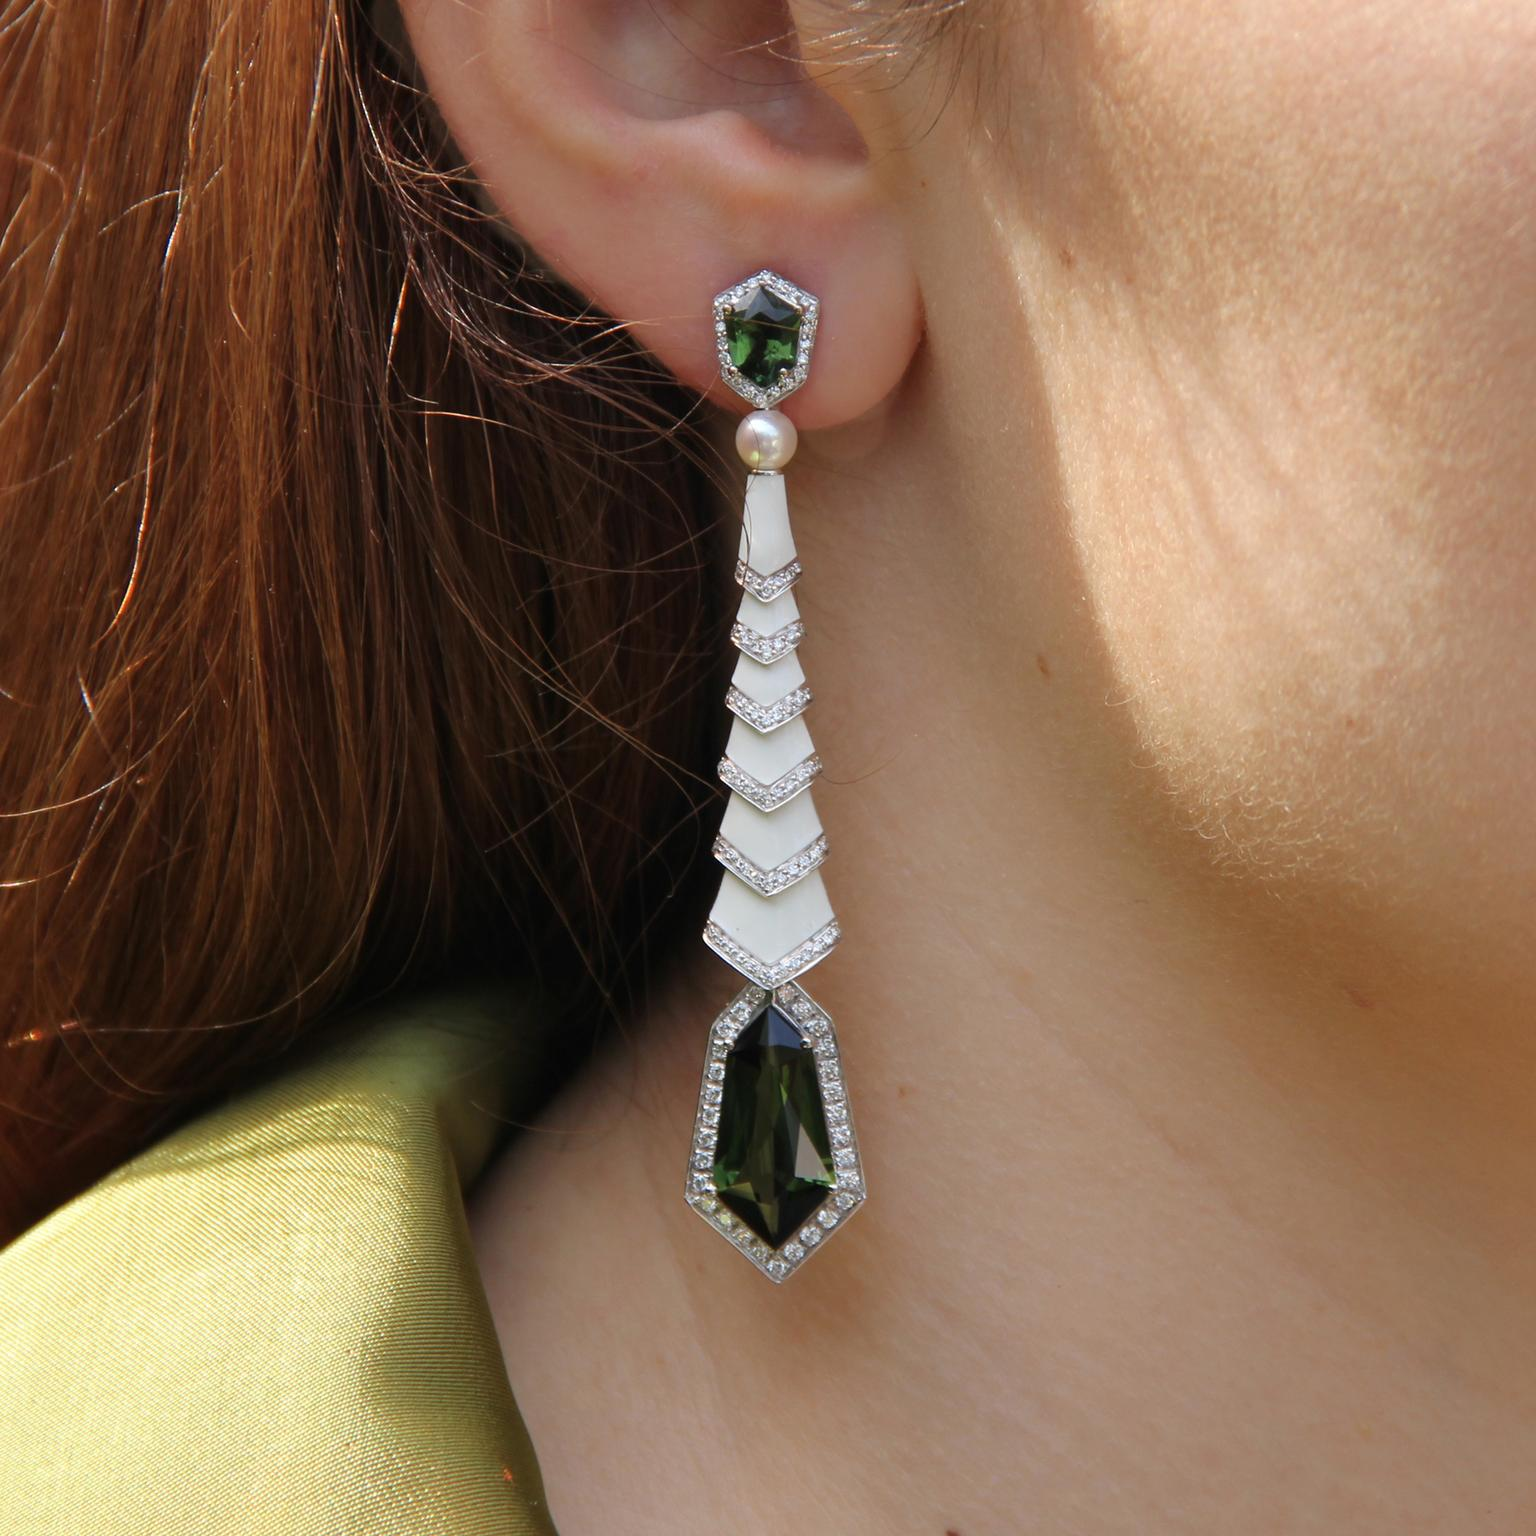 Avakian Gatsby earrings with green tourmalines